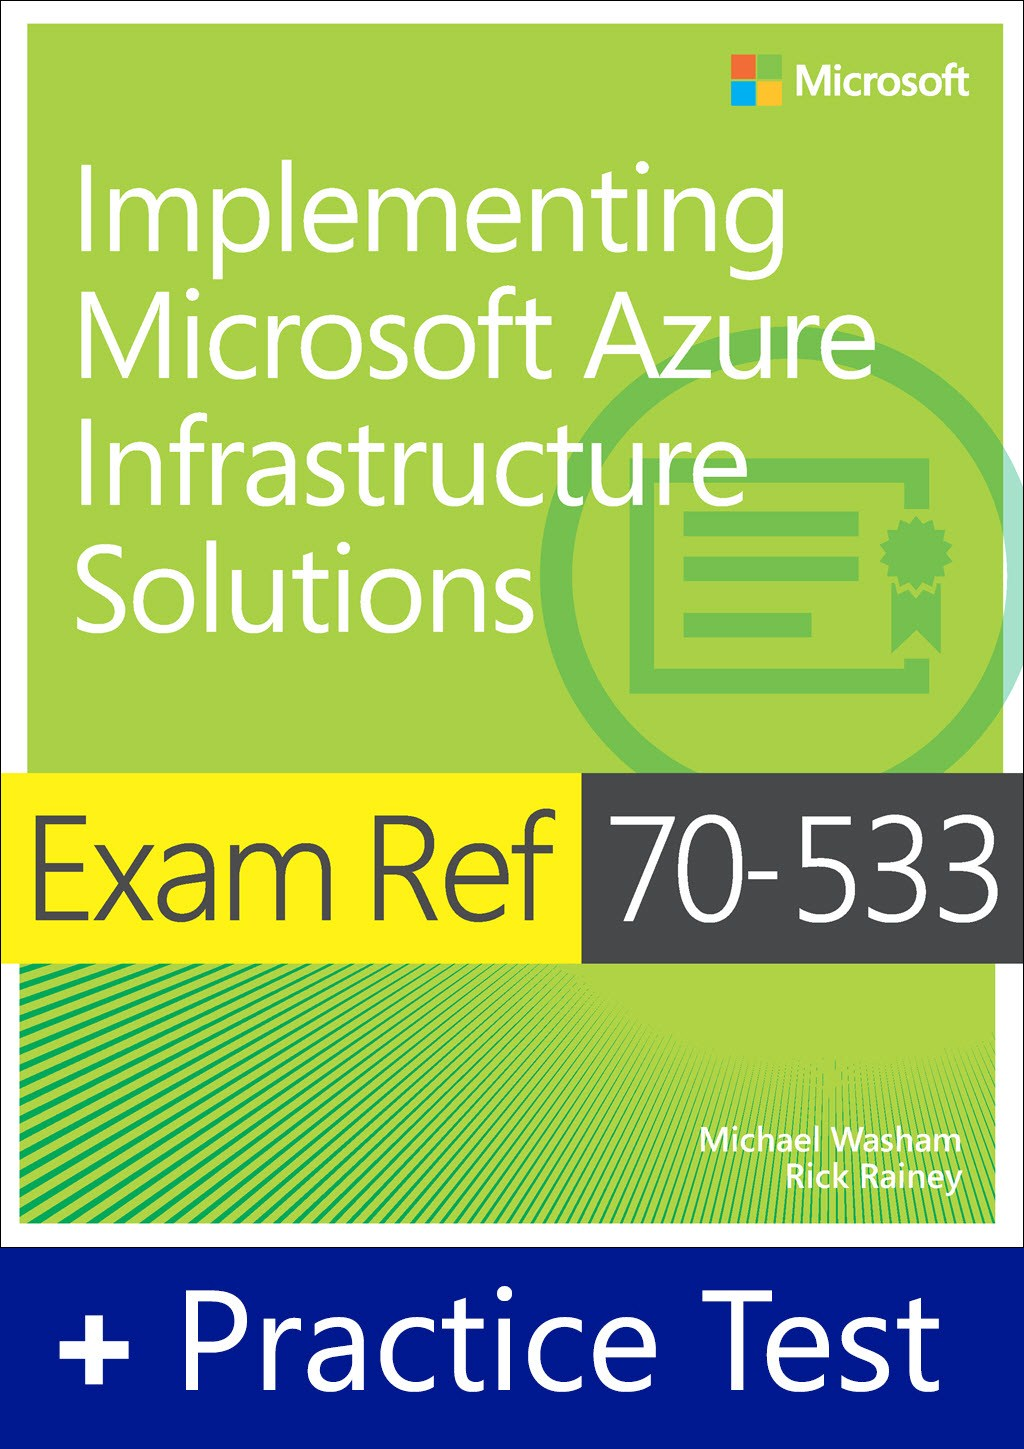 Exam Ref 70-533 Implementing Microsoft Azure Infrastructure Solutions with Practice Test Access